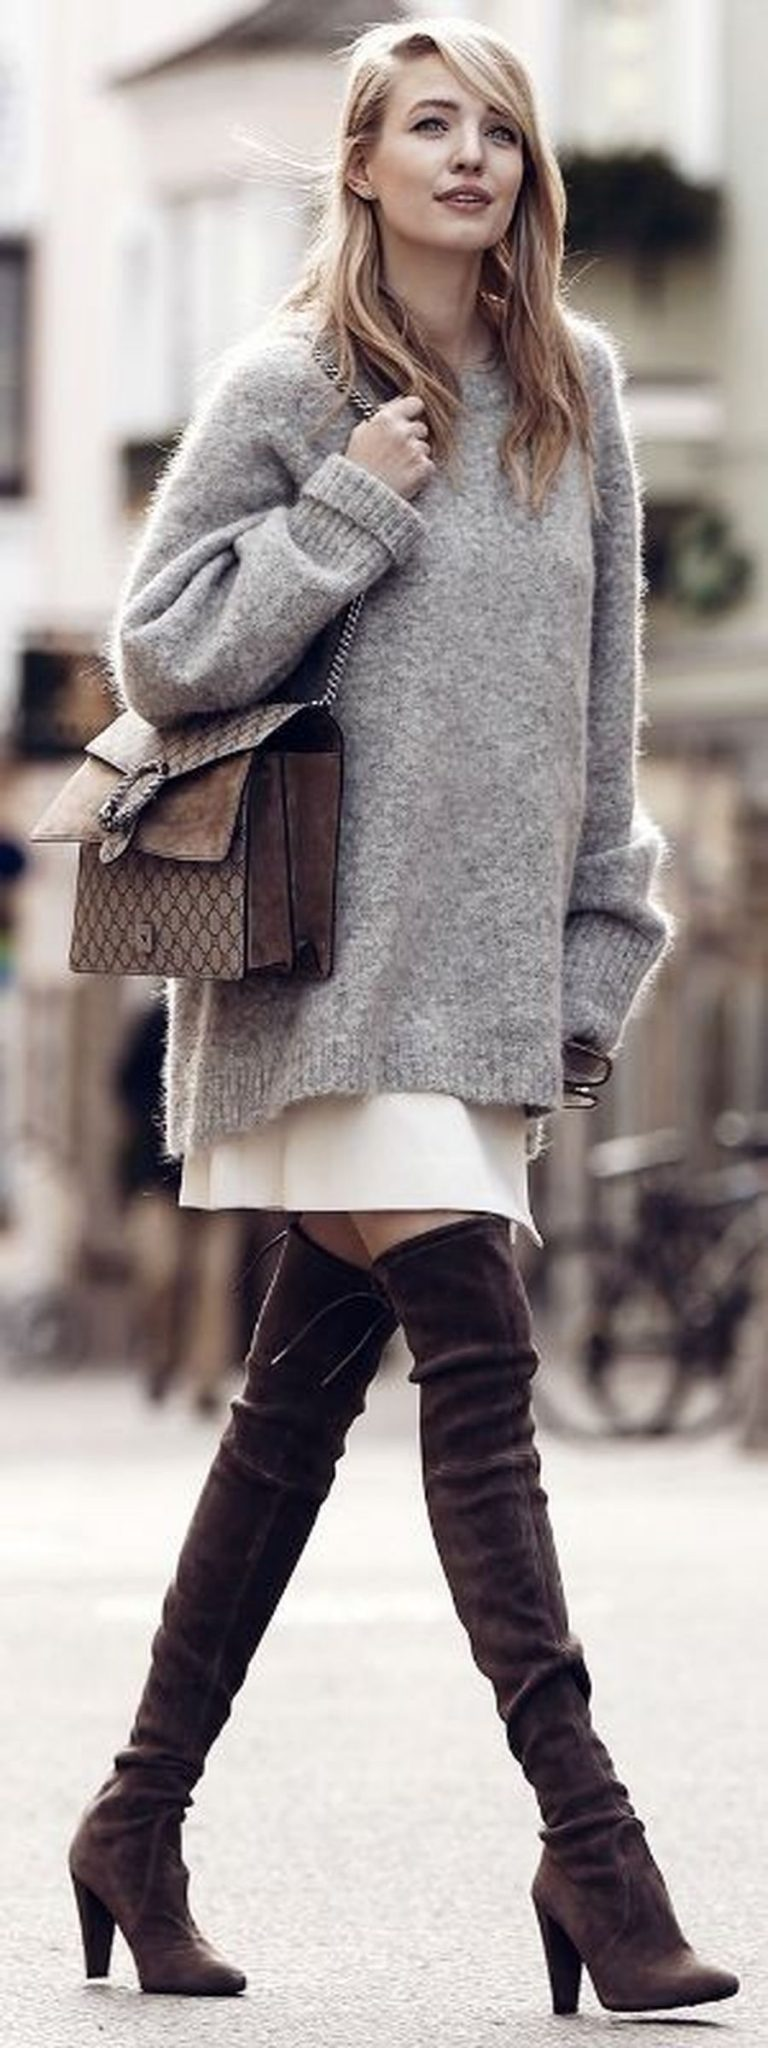 Inspiring skirt and boots combinations for fall and winter outfits 58